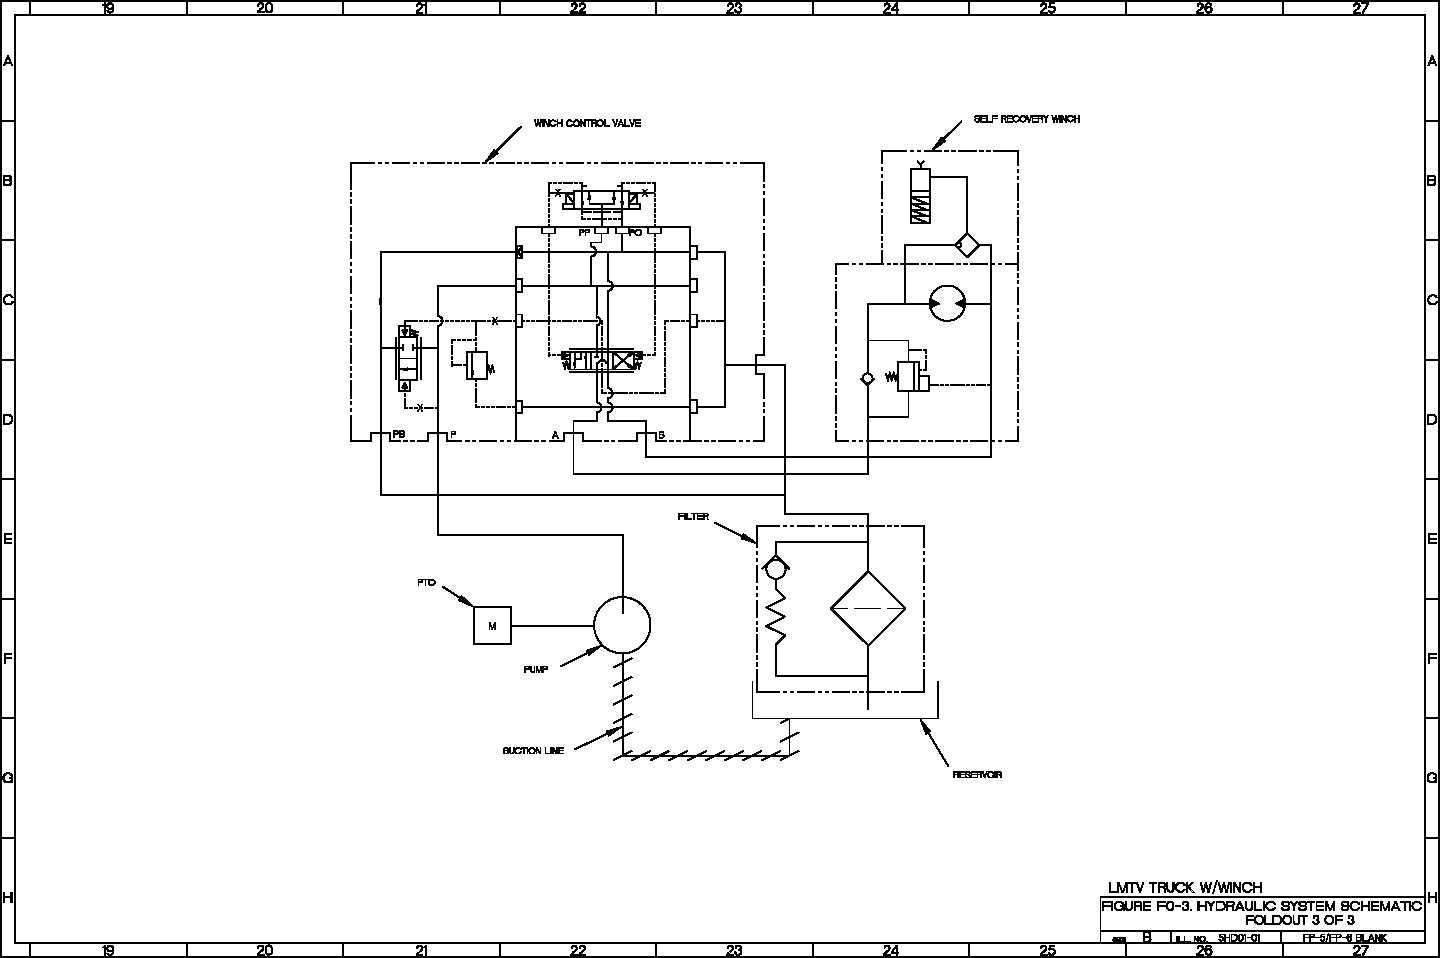 hydraulic schematic